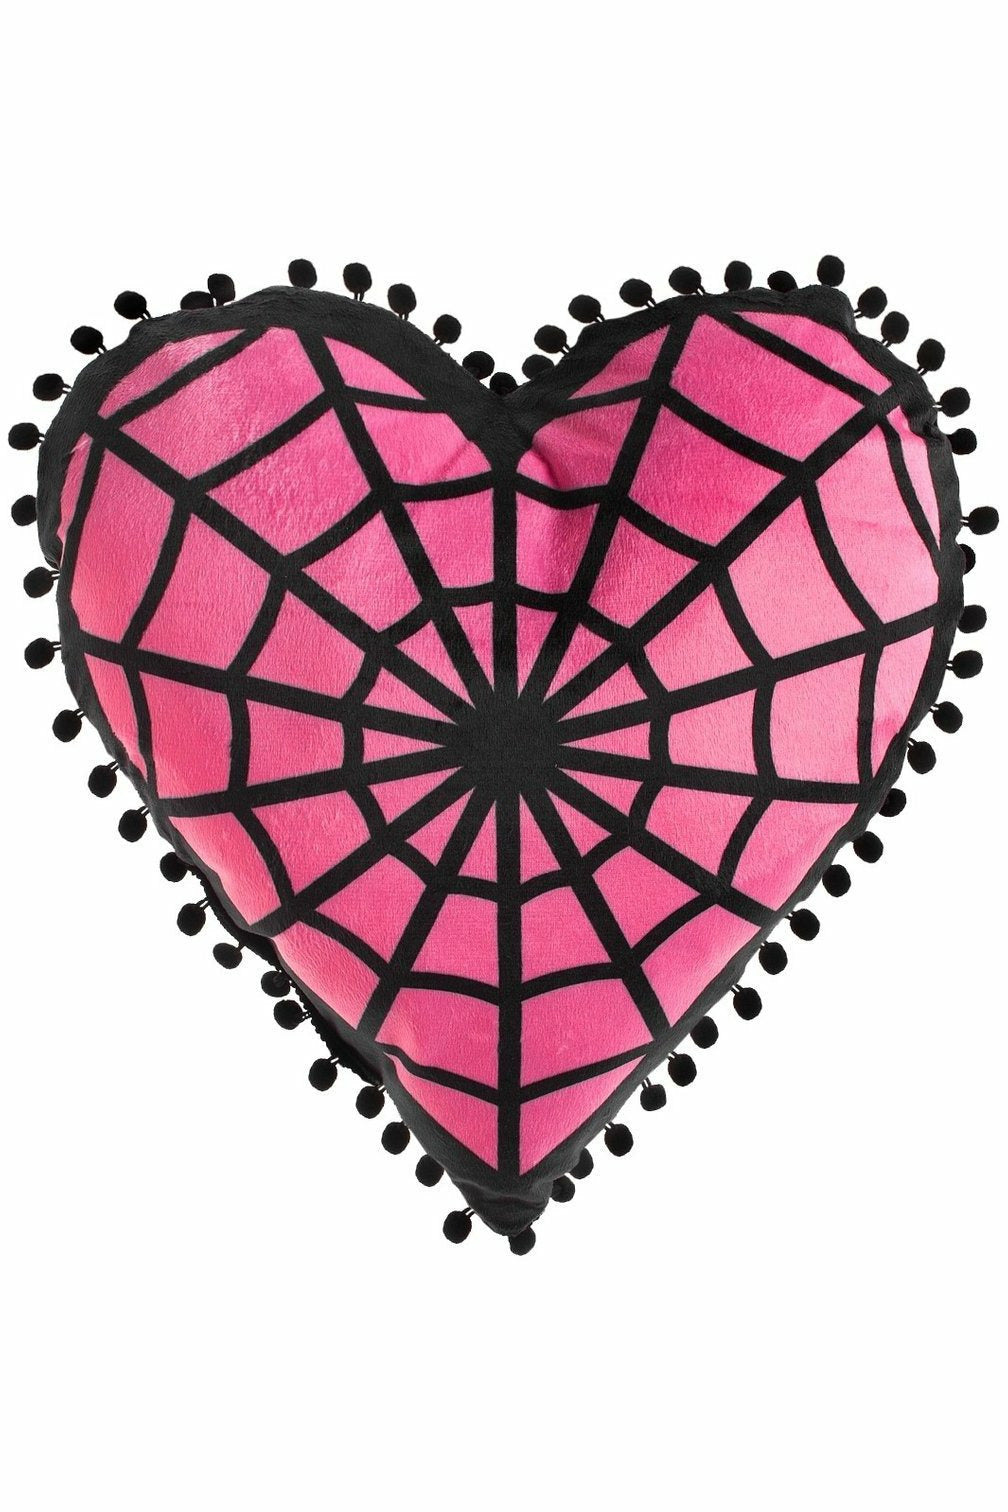 Webbed Heart Pillow